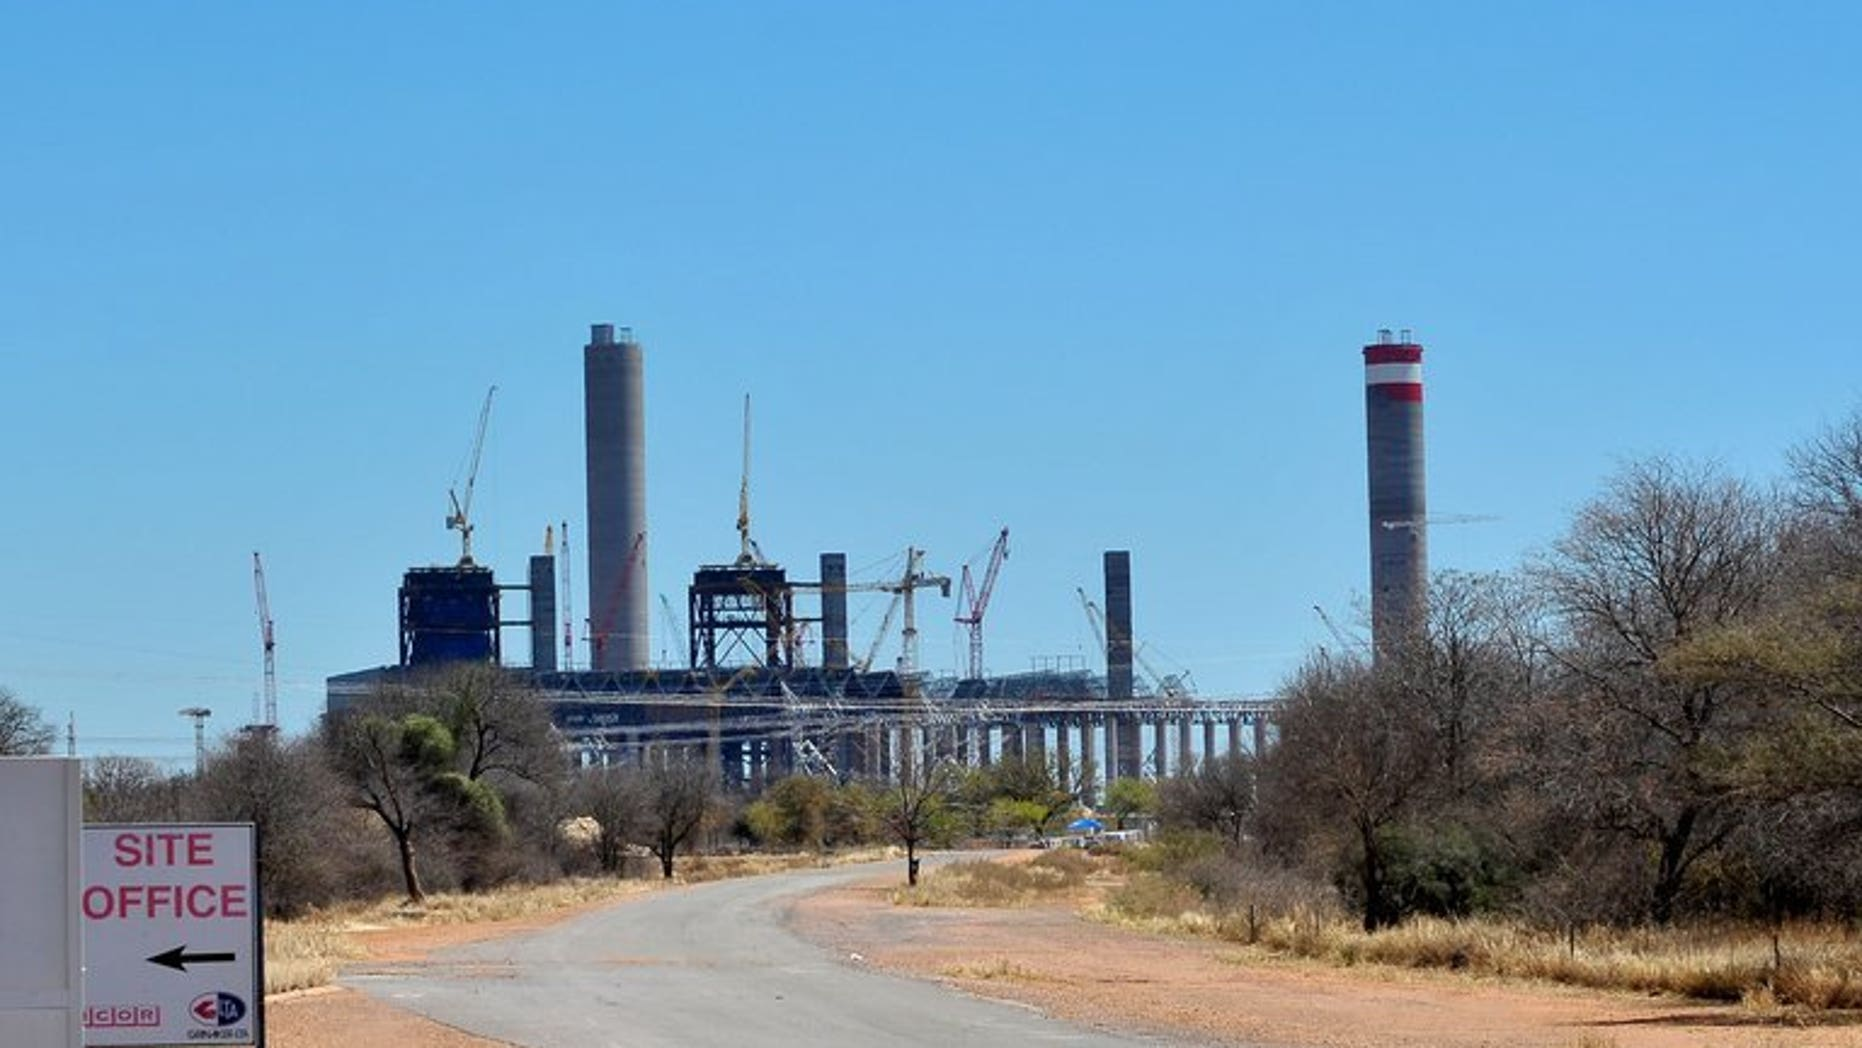 Construction work underway at the Medupi power plant near Lephalala in 2011. South Africa's state-owned utility Eskom announced on Monday that a much-needed mega power station will not come online until late 2014, spelling further problems for the energy-hungry nation.